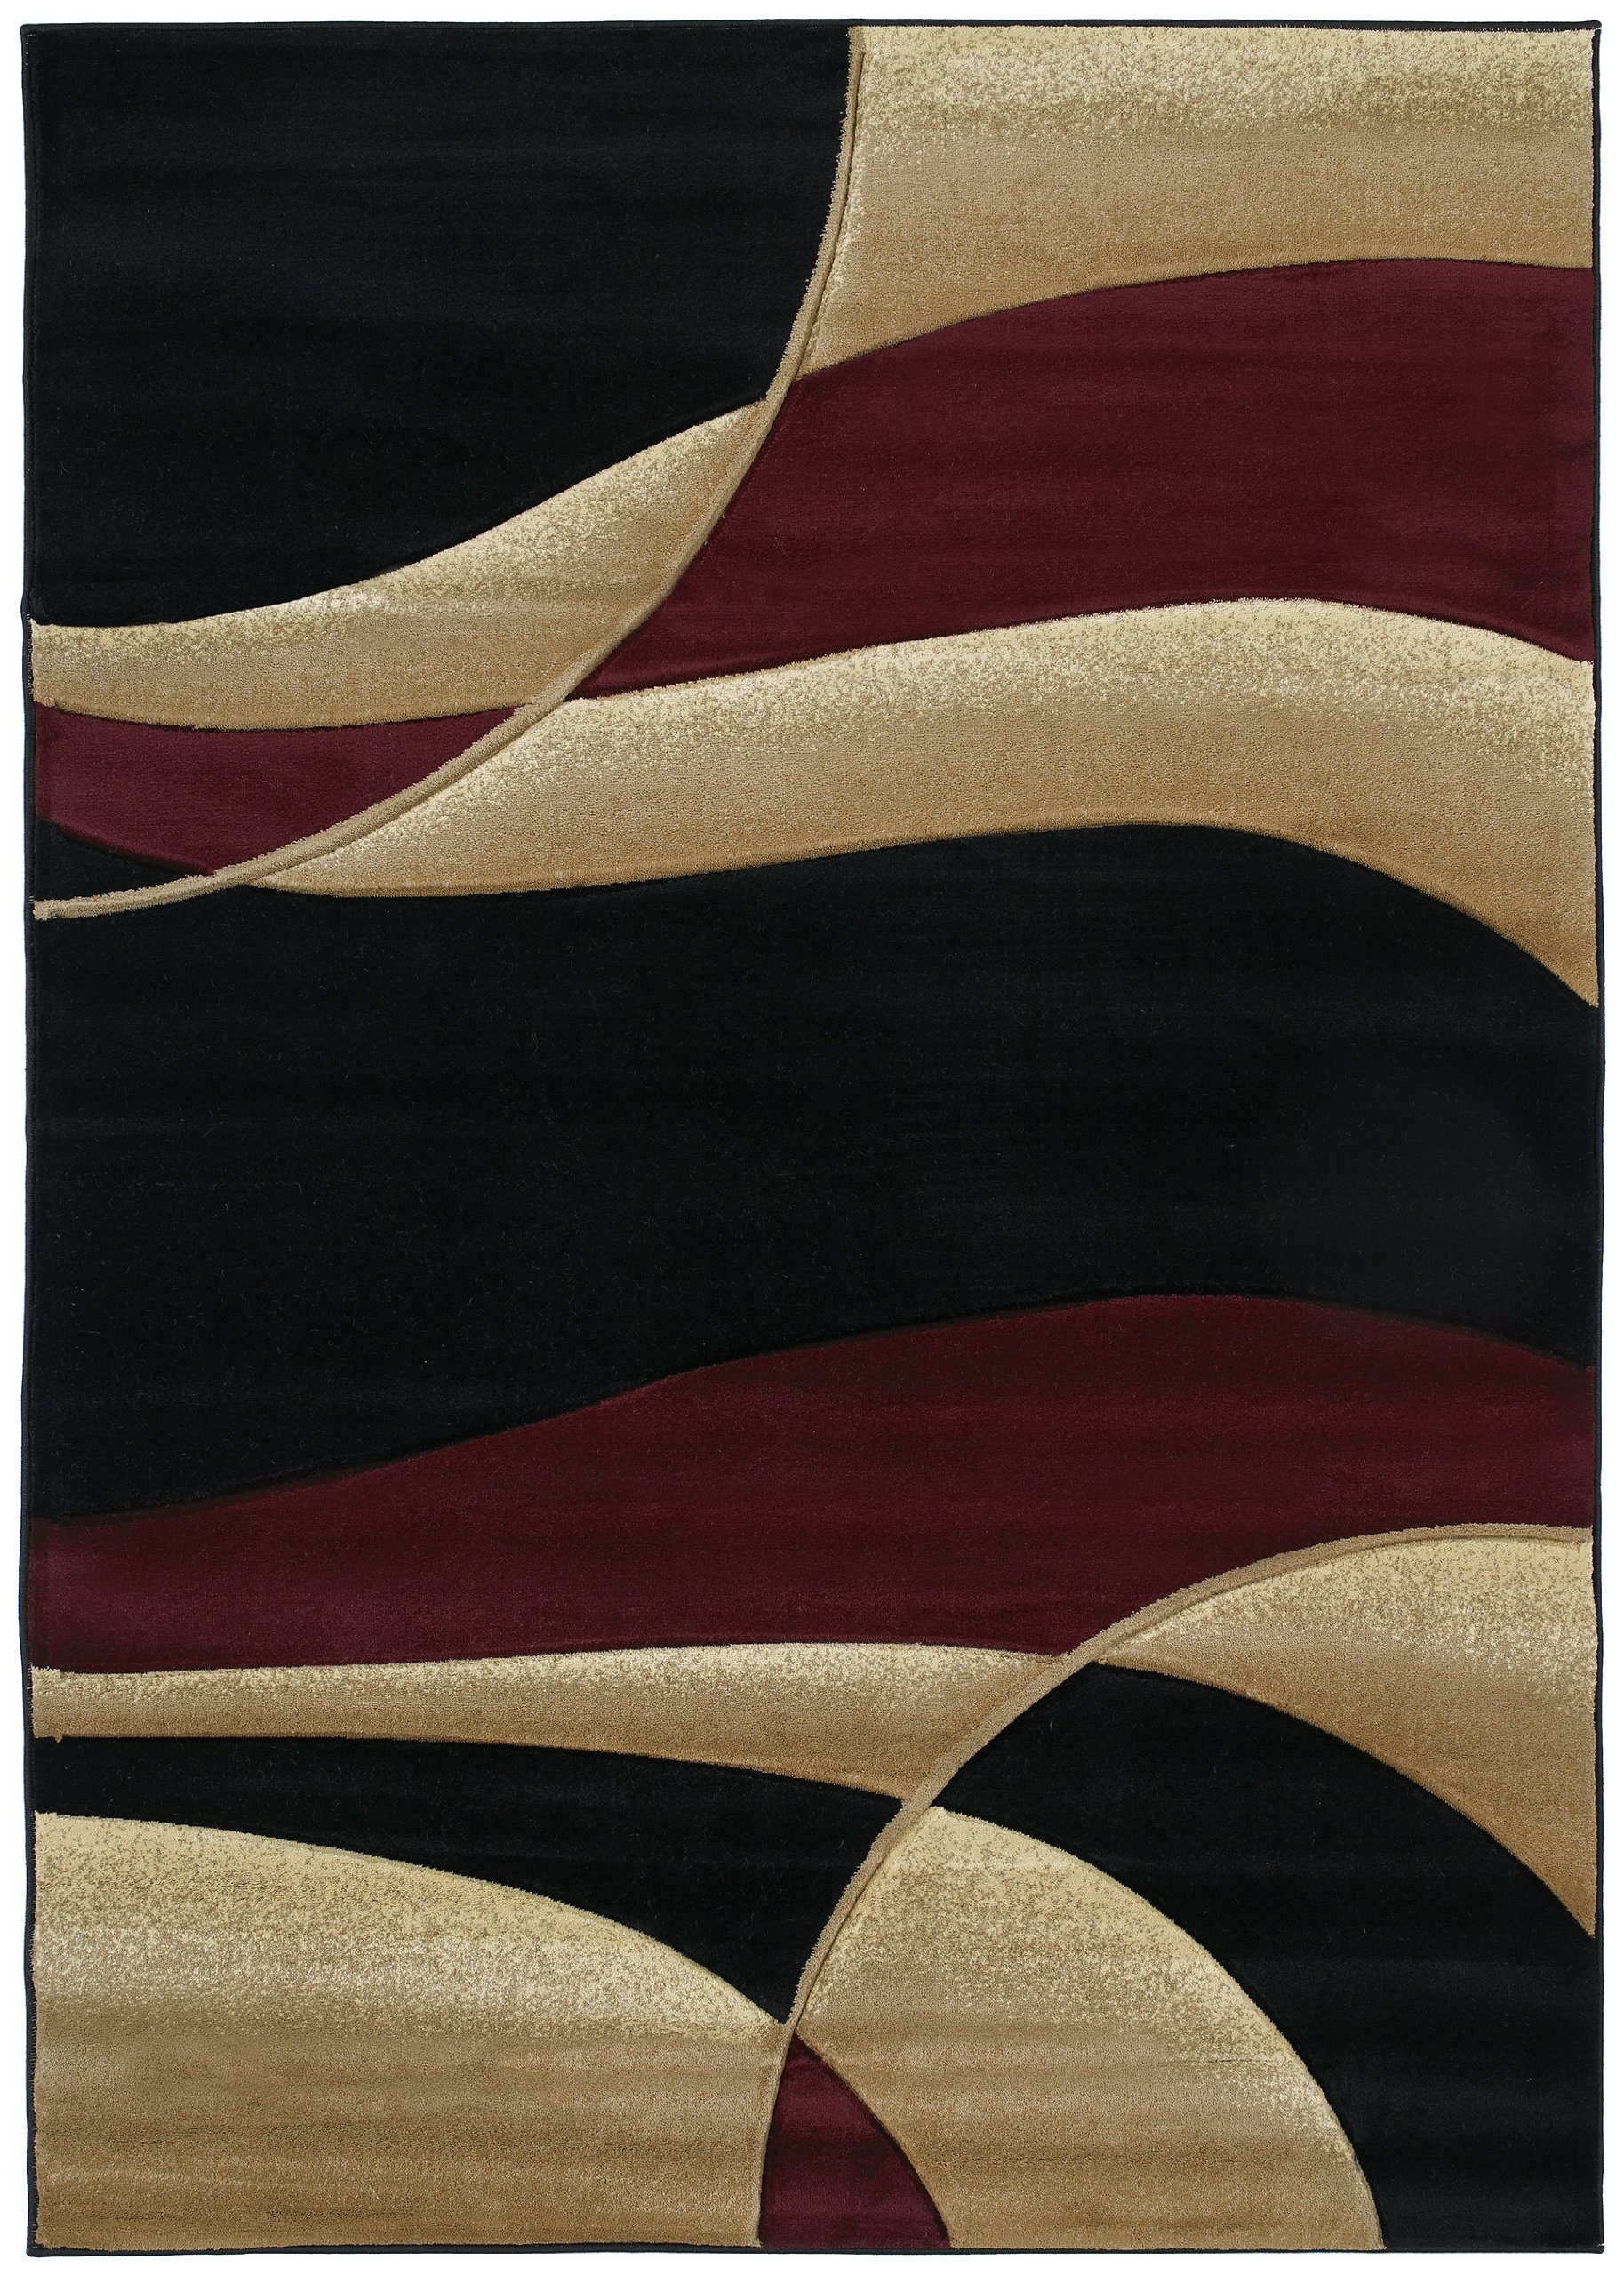 United Weavers Contours Collection Avalon 5-Foot 3-inch by 7-Feet 6-inch Heavyweight Heatset Olefin Rug, Burgundy